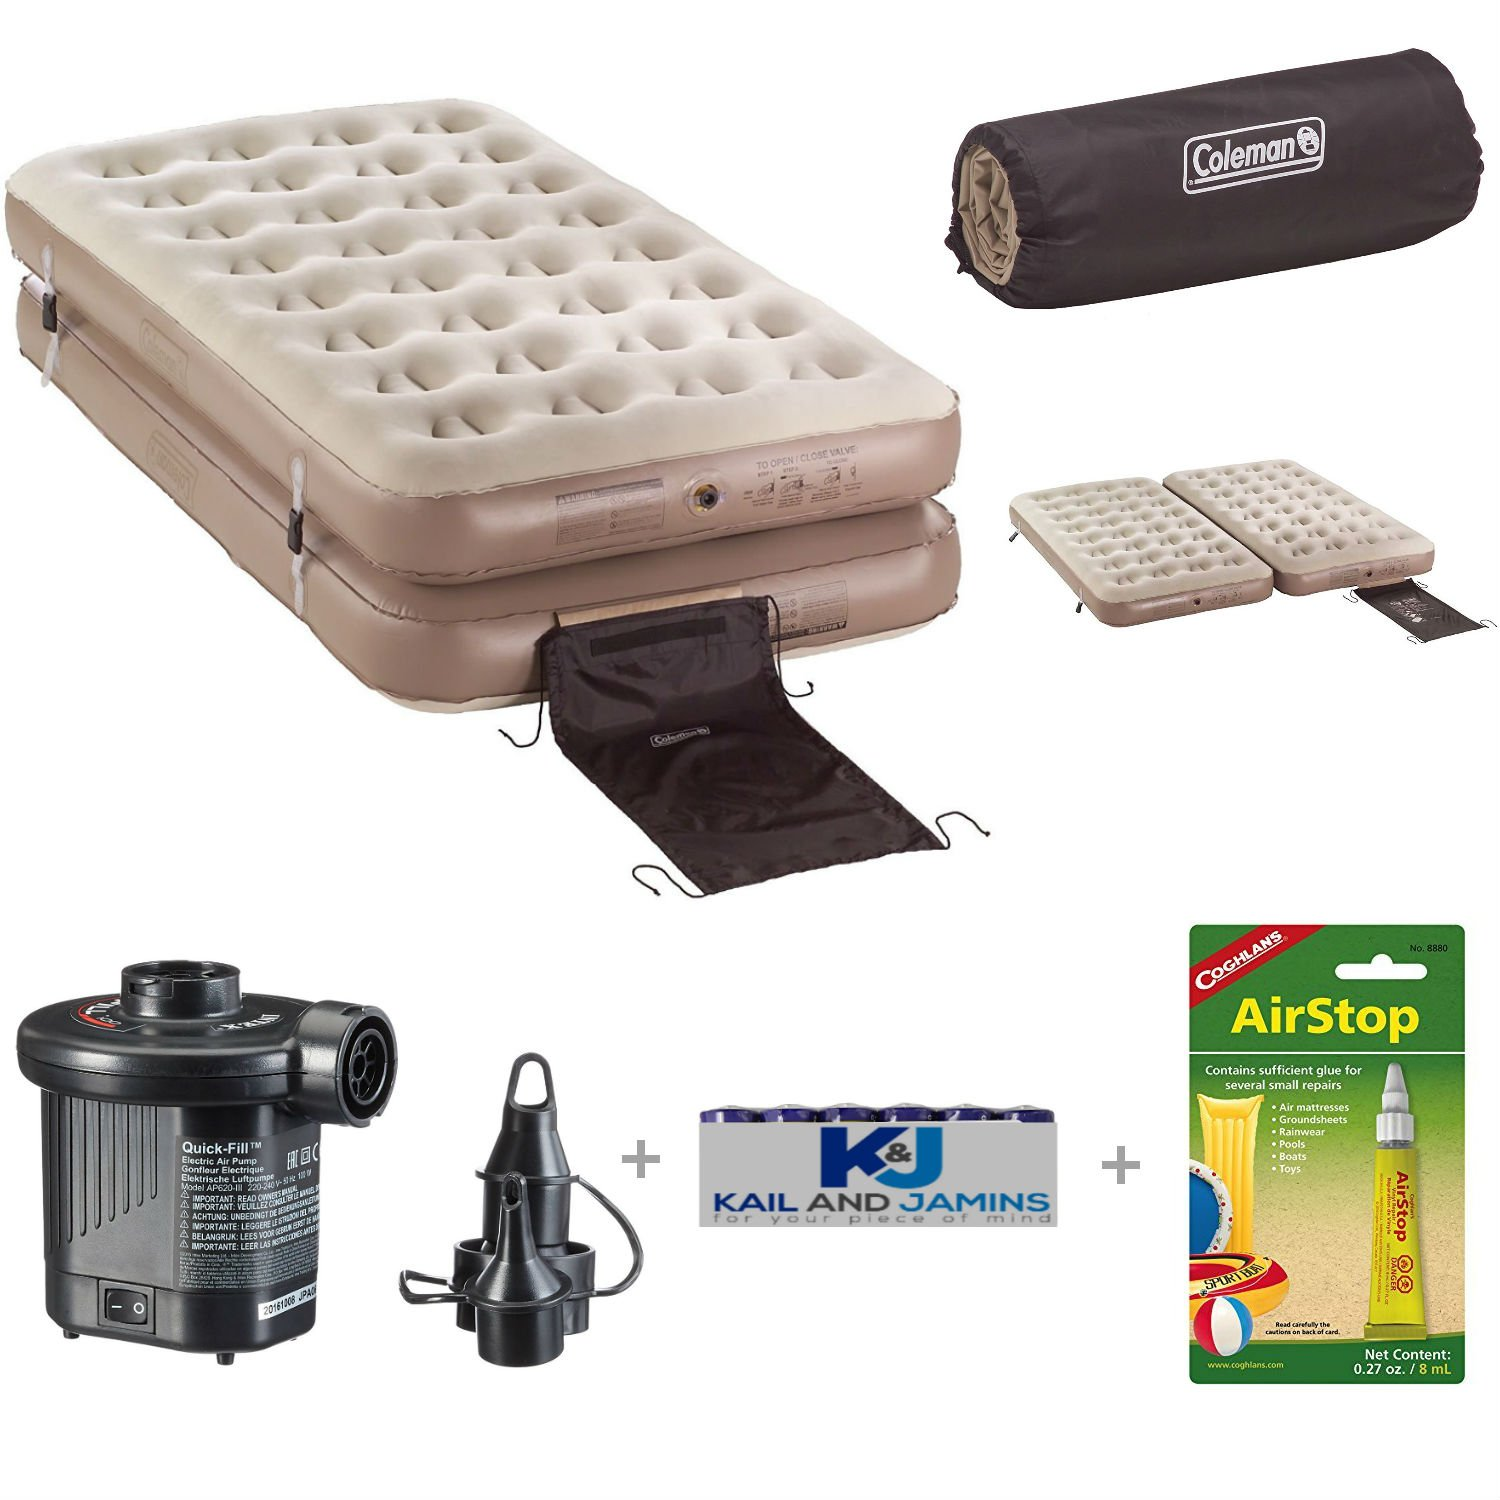 Inflatable Coleman Air mattress + Air pump and Repair Kit By K&J's – Serves as a Twin Double Bed, Single High King Bed, as you choose, - This heavy duty blow up is a great bed for camping, picnics